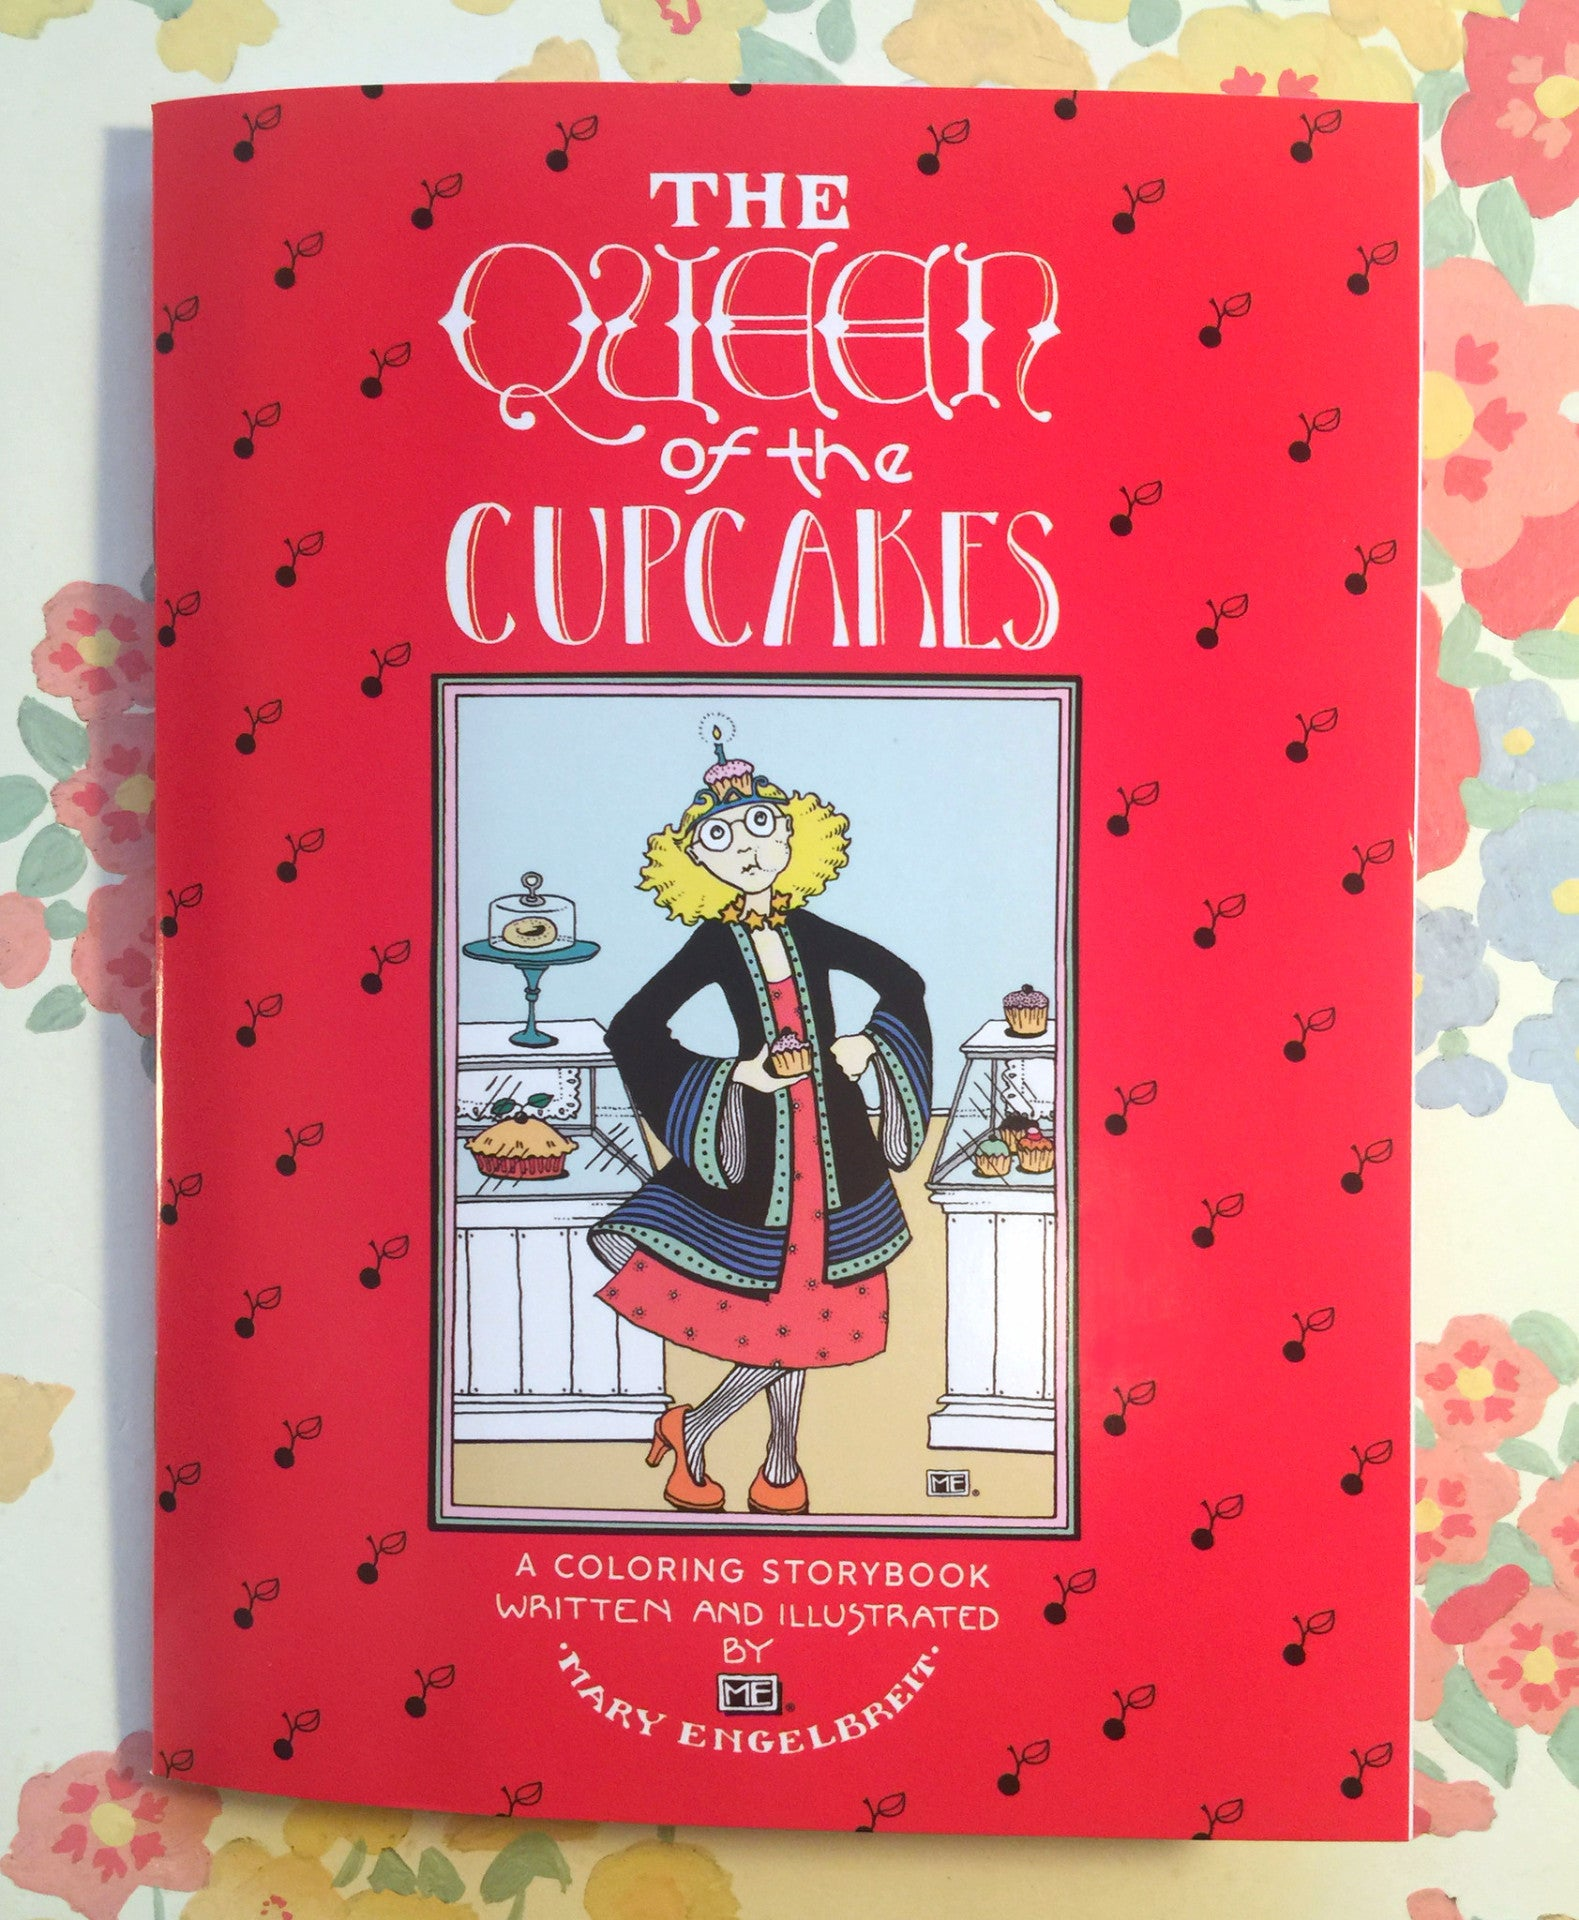 the queen of the cupcakes coloring storybook u2013 mary engelbreit